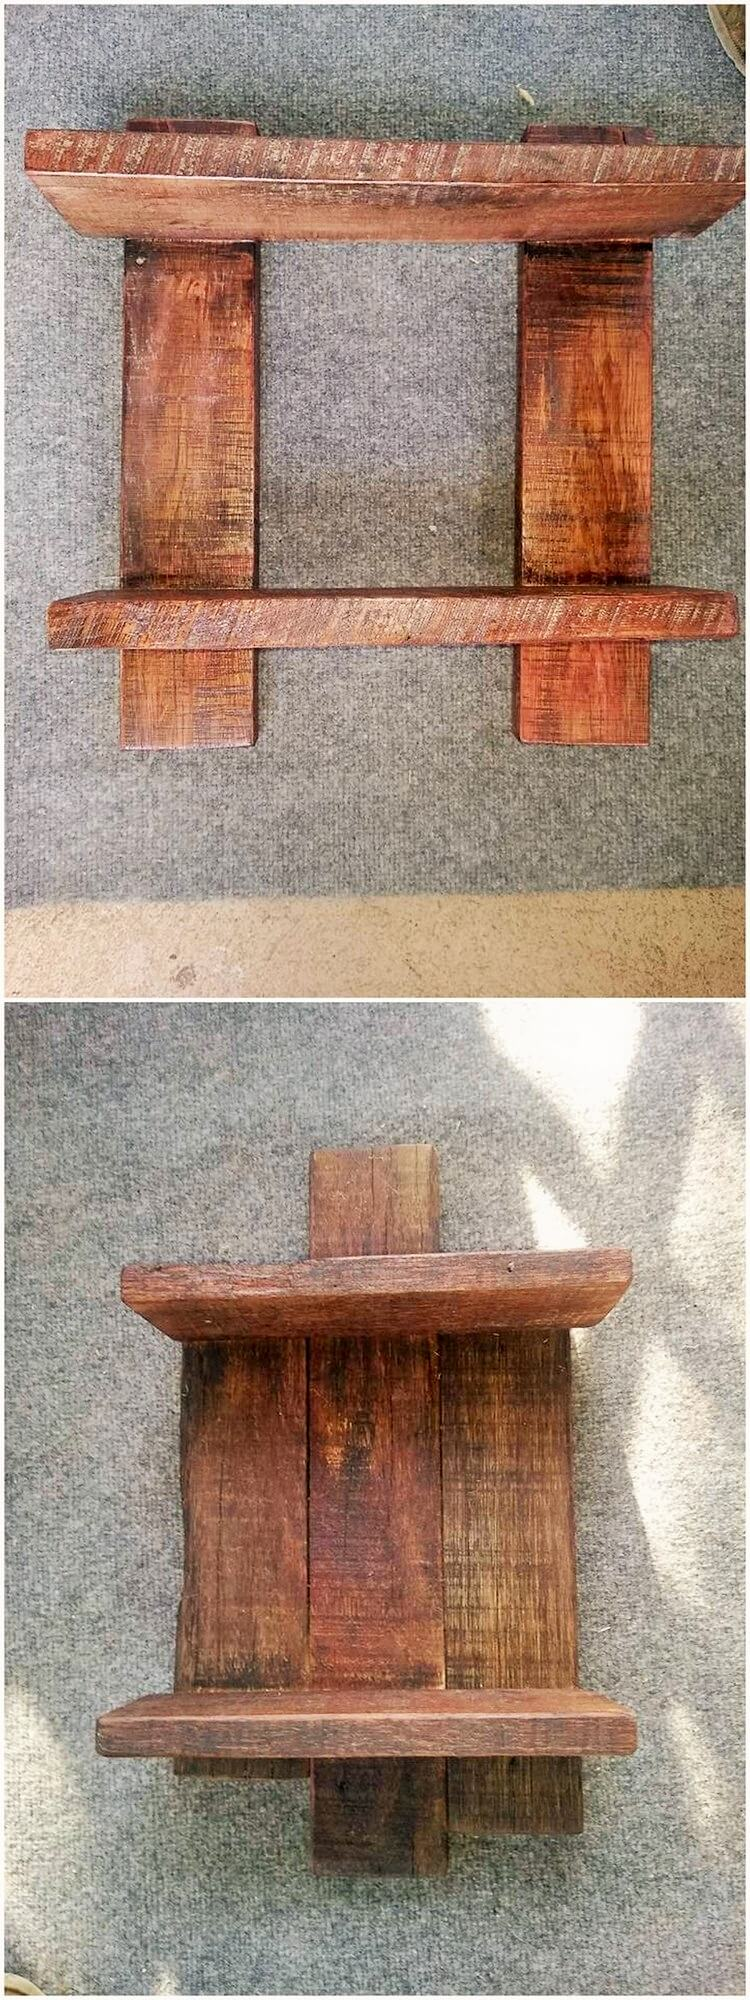 Old-Pallet- Diy-Recycle-Things-Projects-21